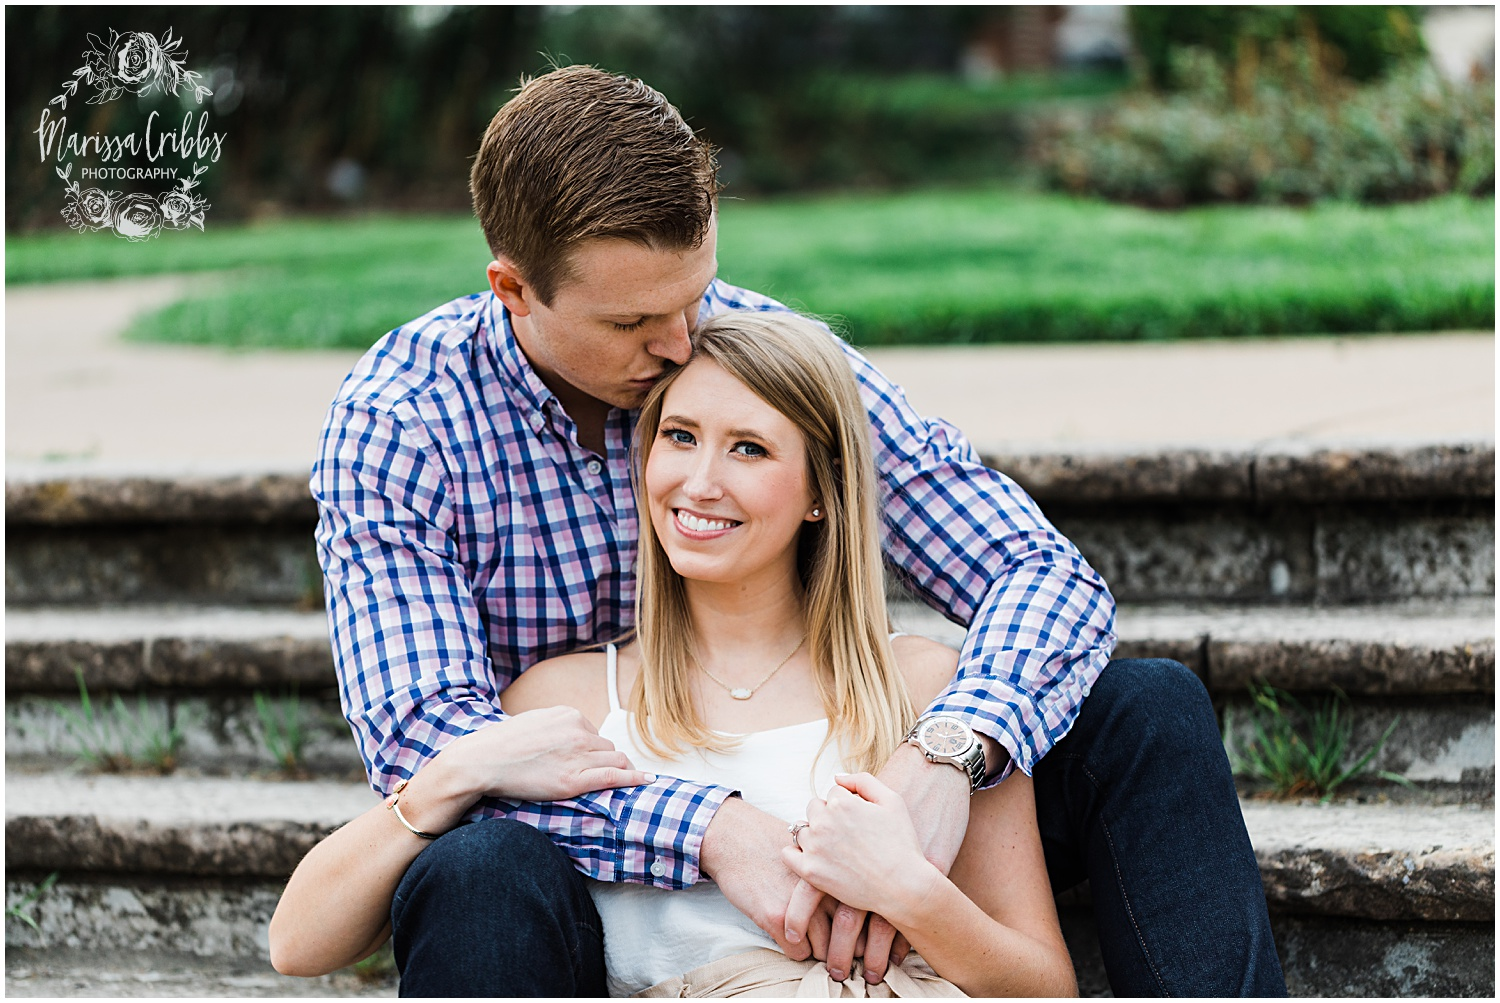 MADDY & KYLE ENGAGEMENT | MARISSA CRIBBS PHOTOGRAPHY_7610.jpg